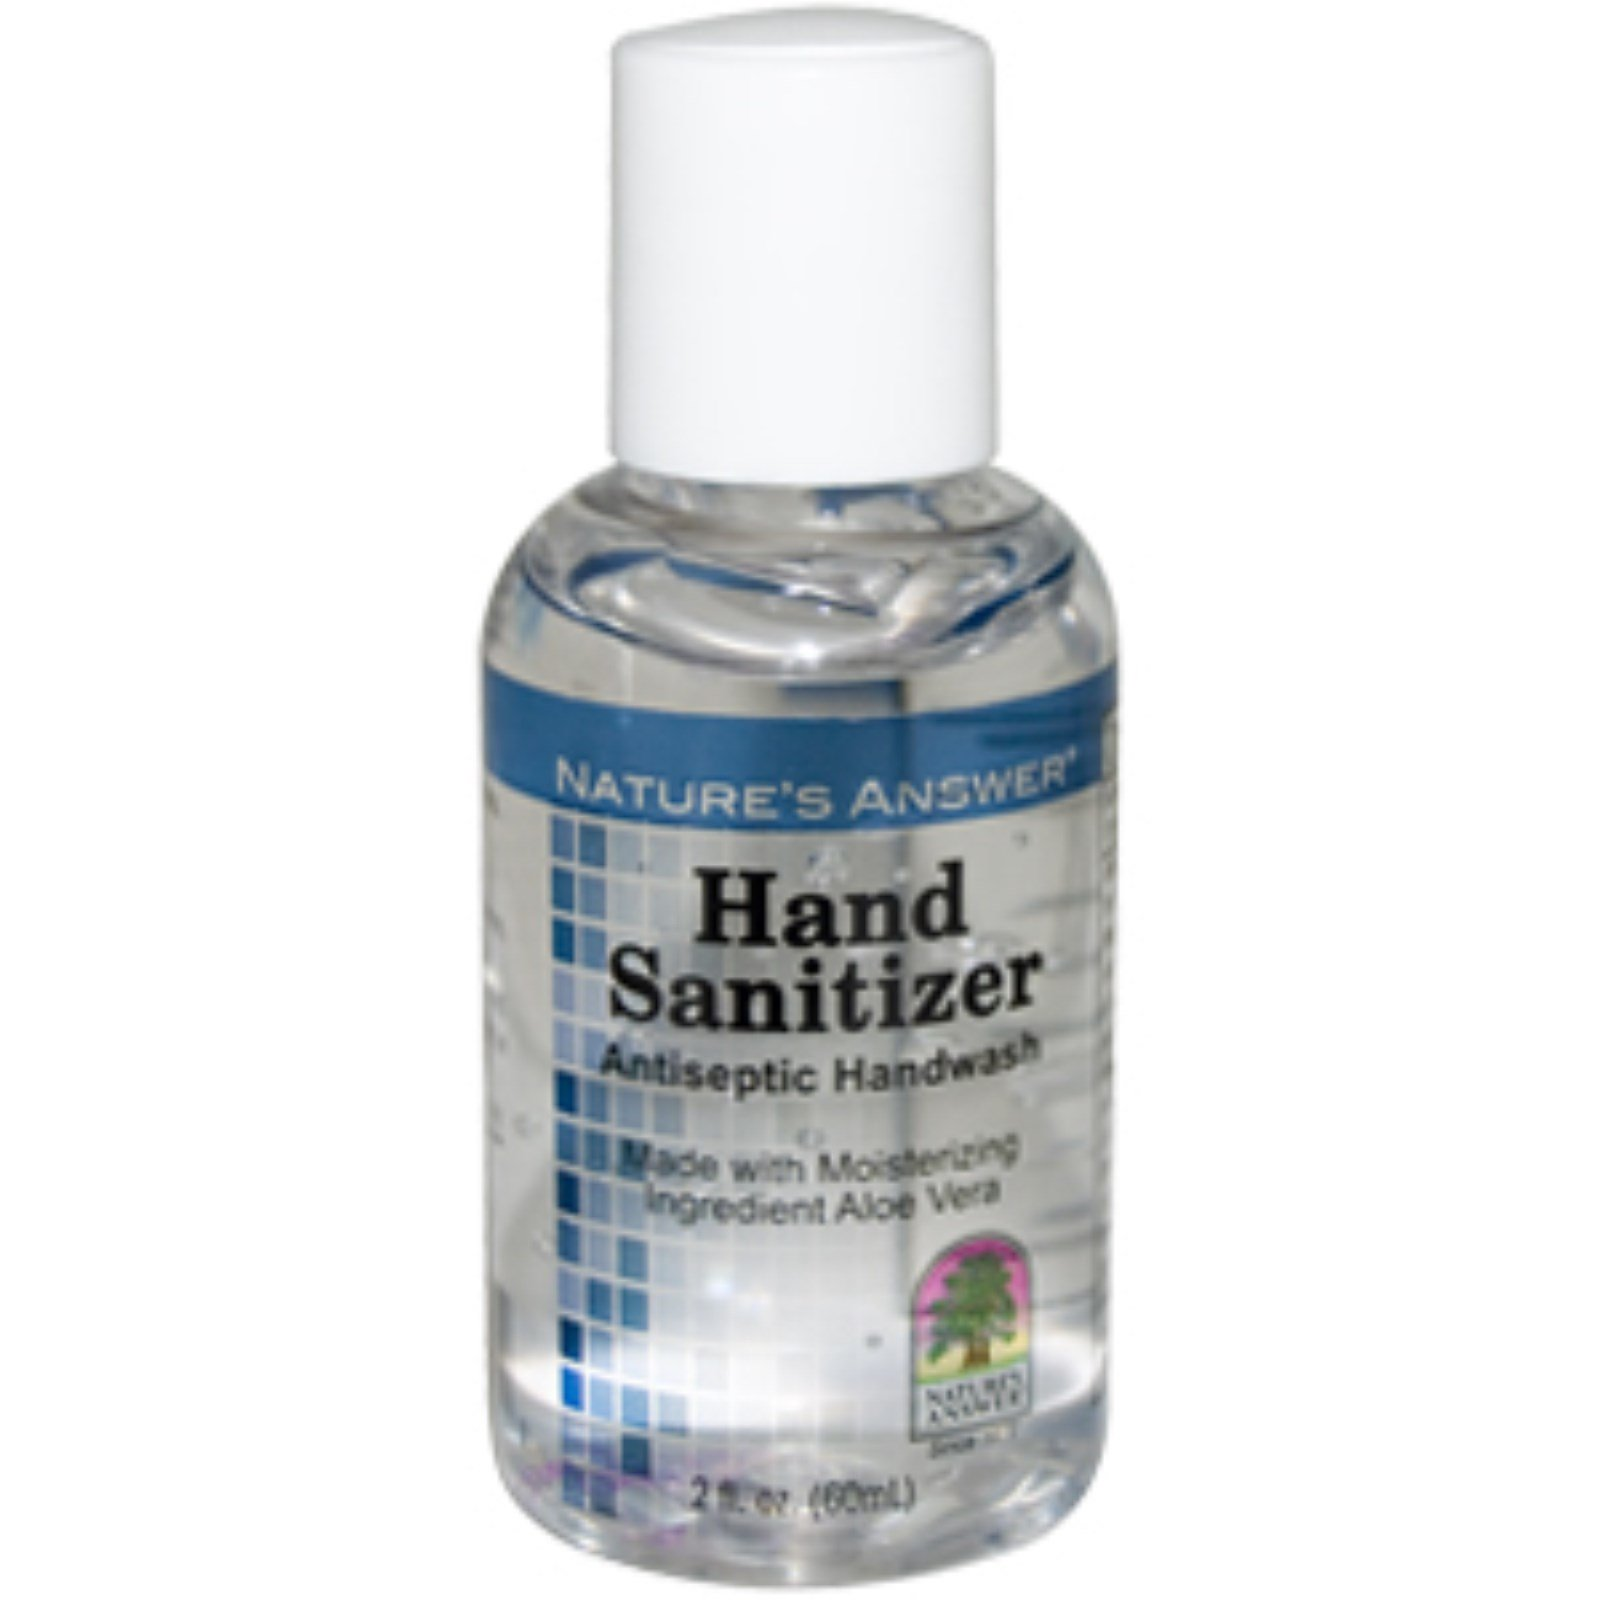 Nature S Answer Hand Sanitizer Antiseptic Handwash 2 Fl Oz 60